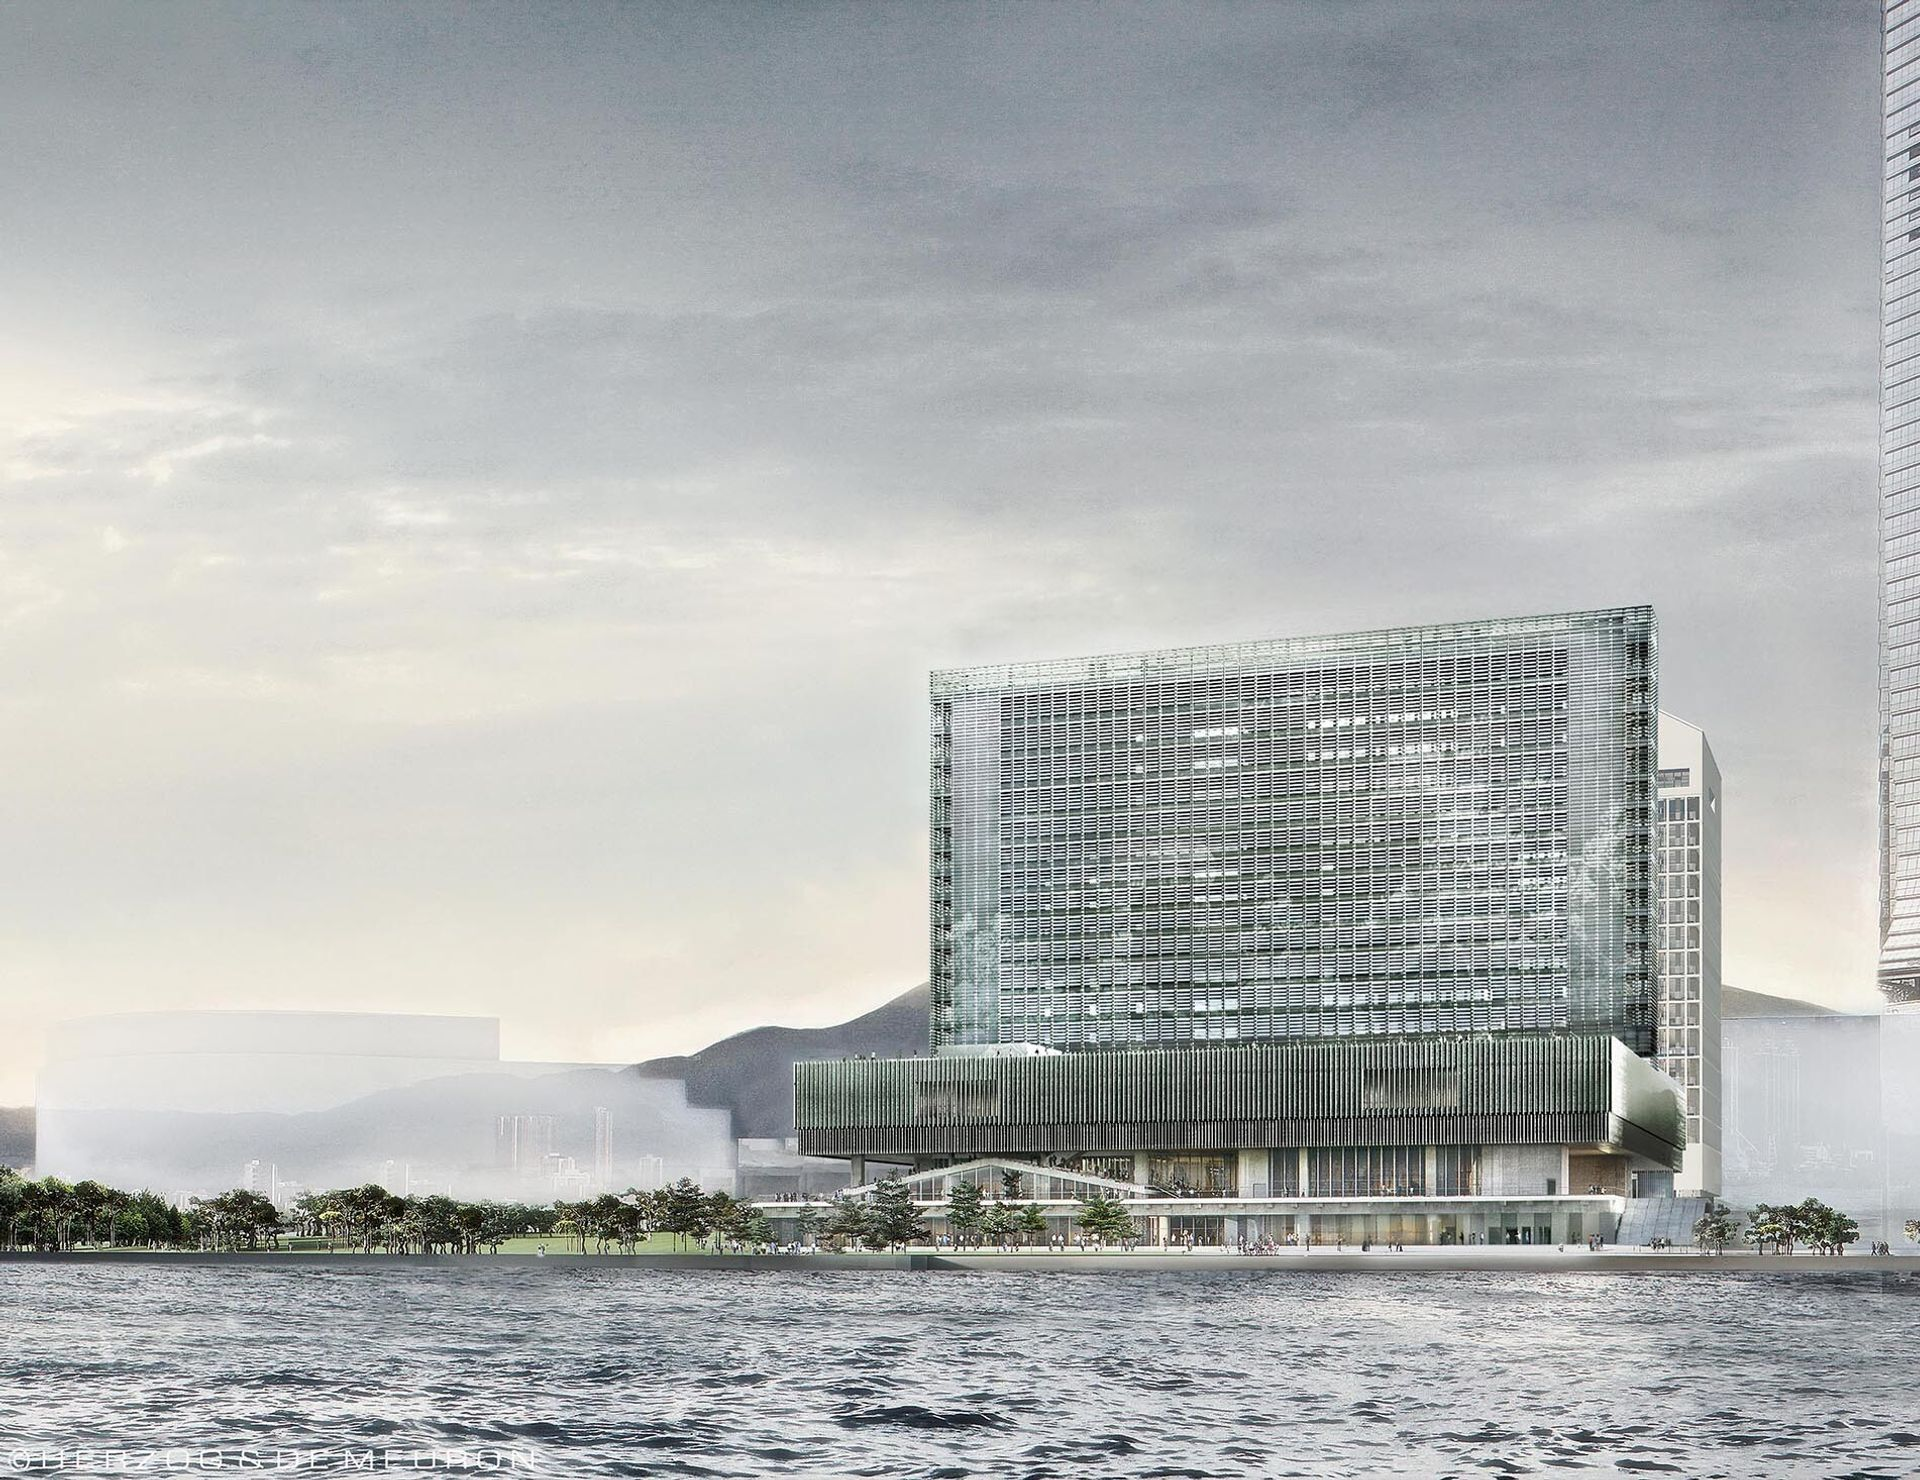 A rendering of the M+ museum of art and visual culture, now due to open in Hong Kong in autumn 2021 © Herzog & de Meuron